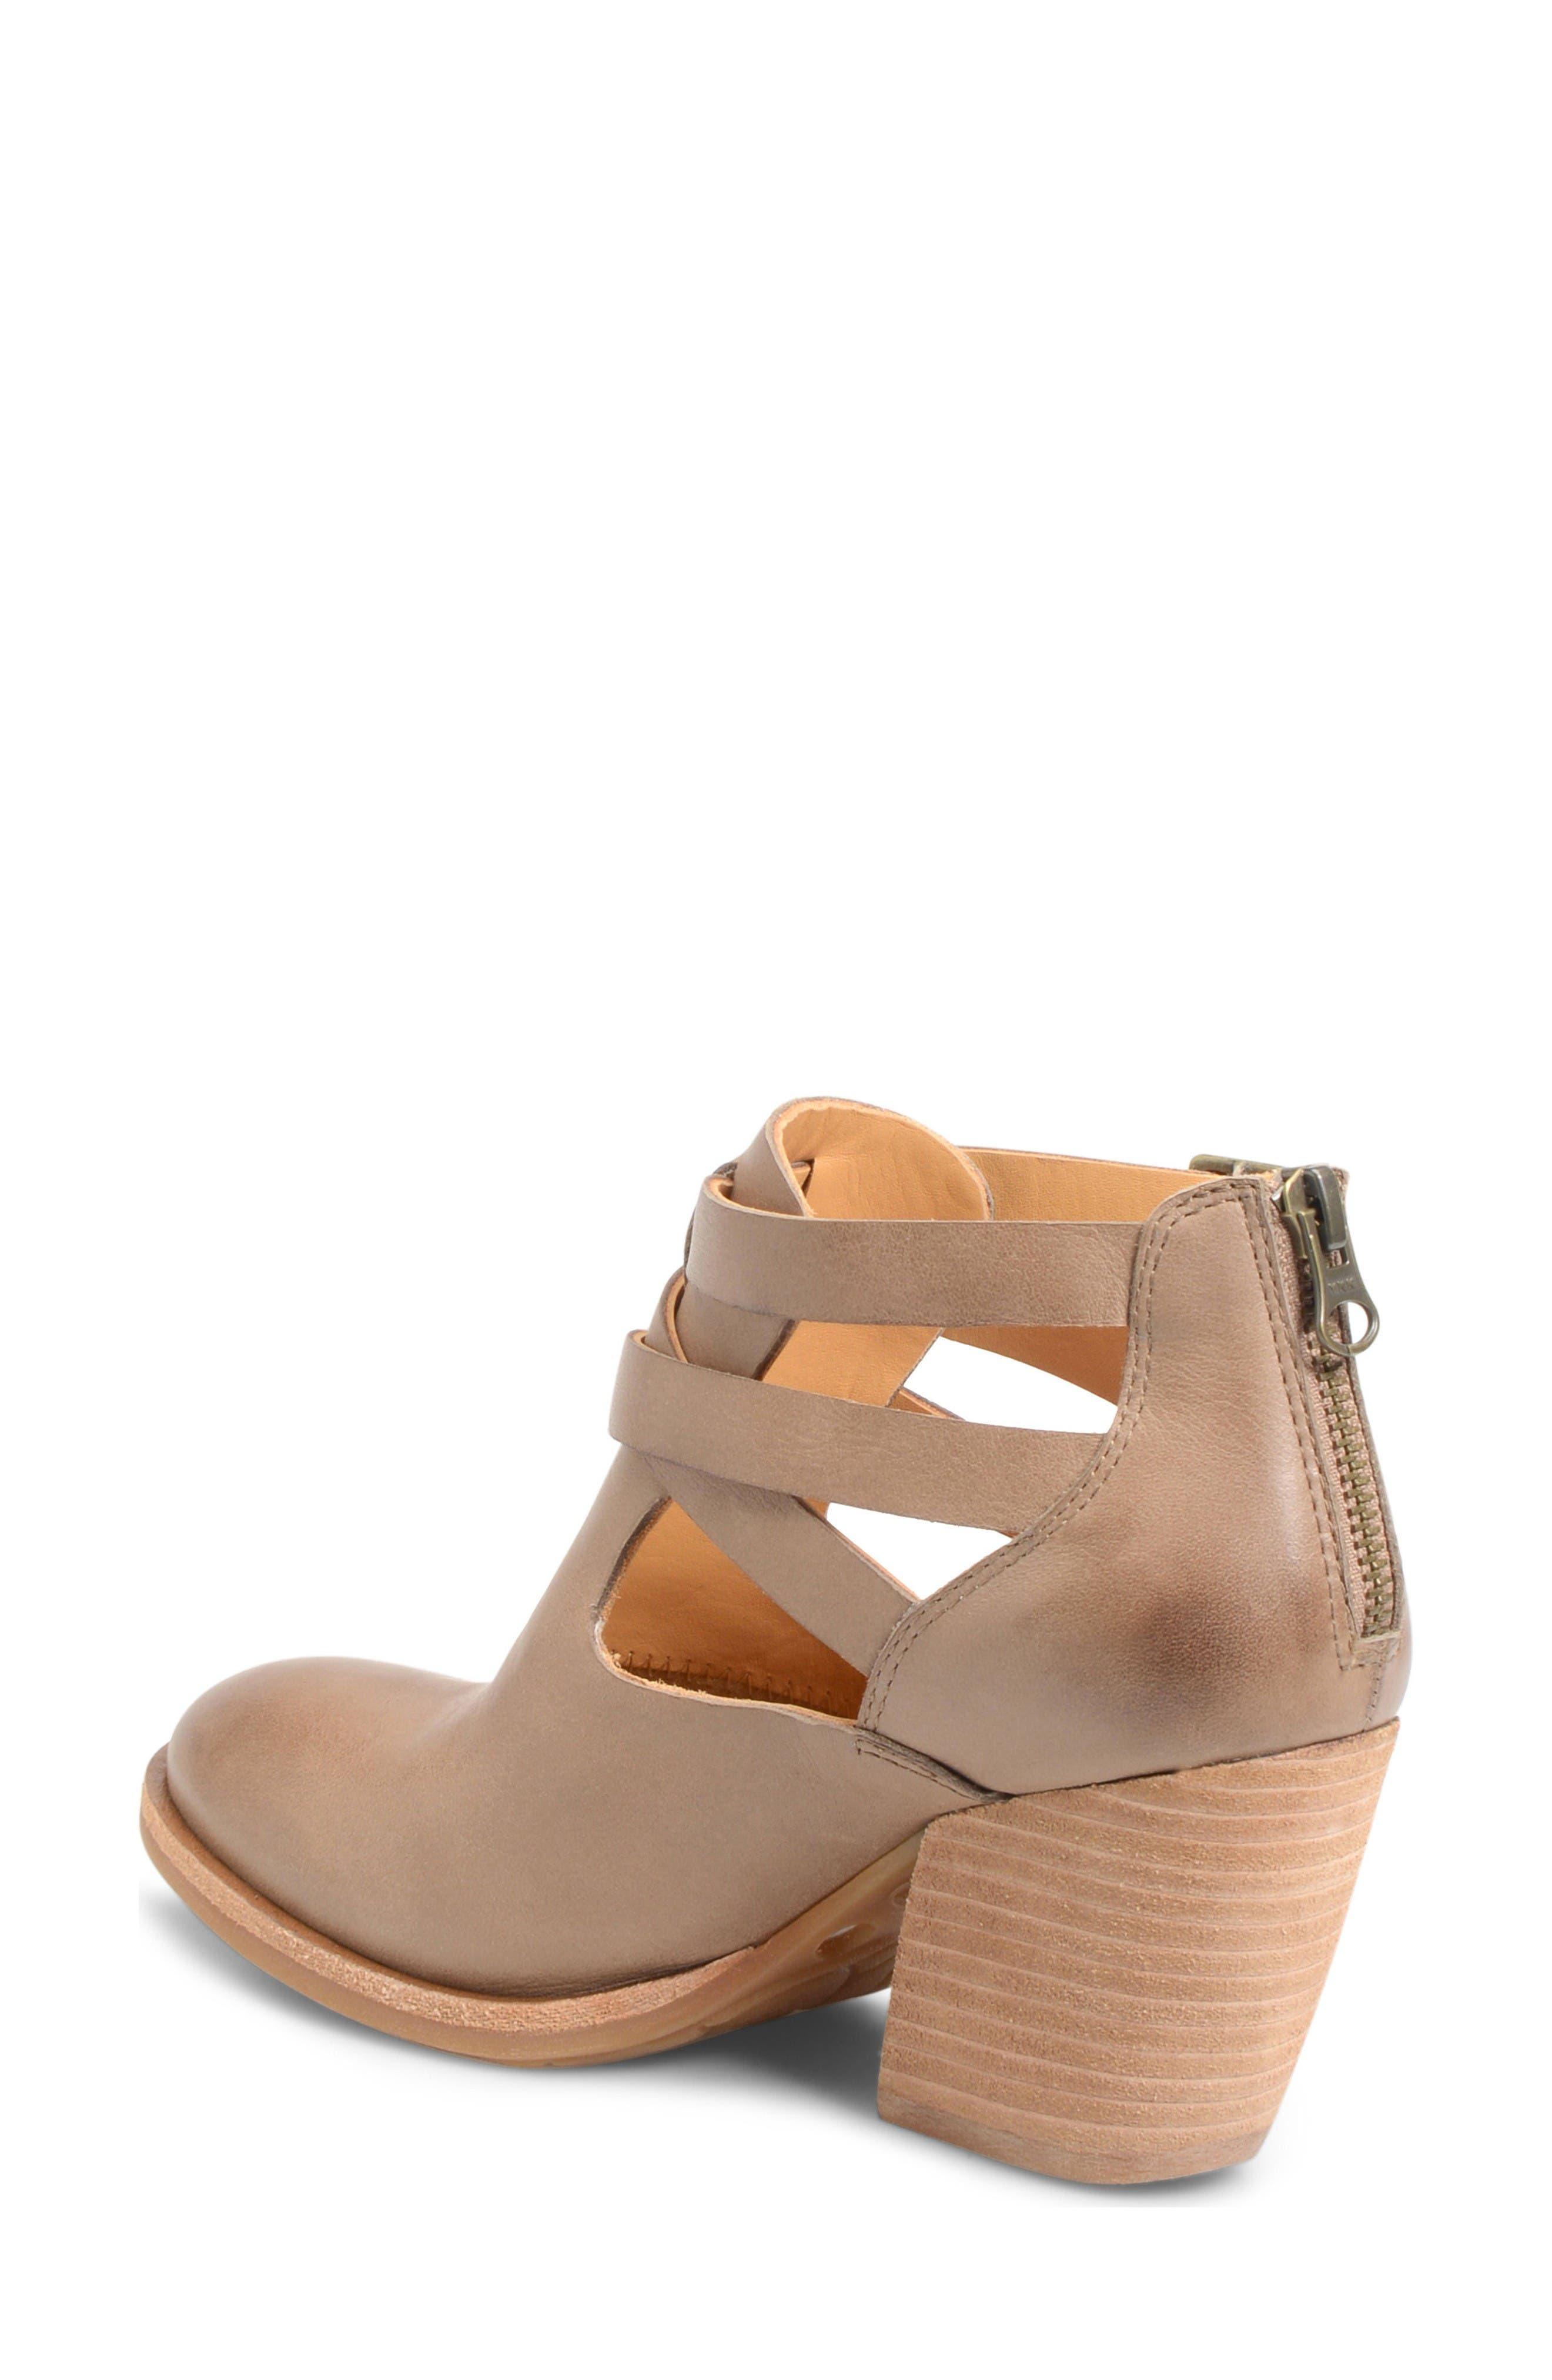 'Stina' Leather Bootie,                             Alternate thumbnail 2, color,                             Taupe Leather